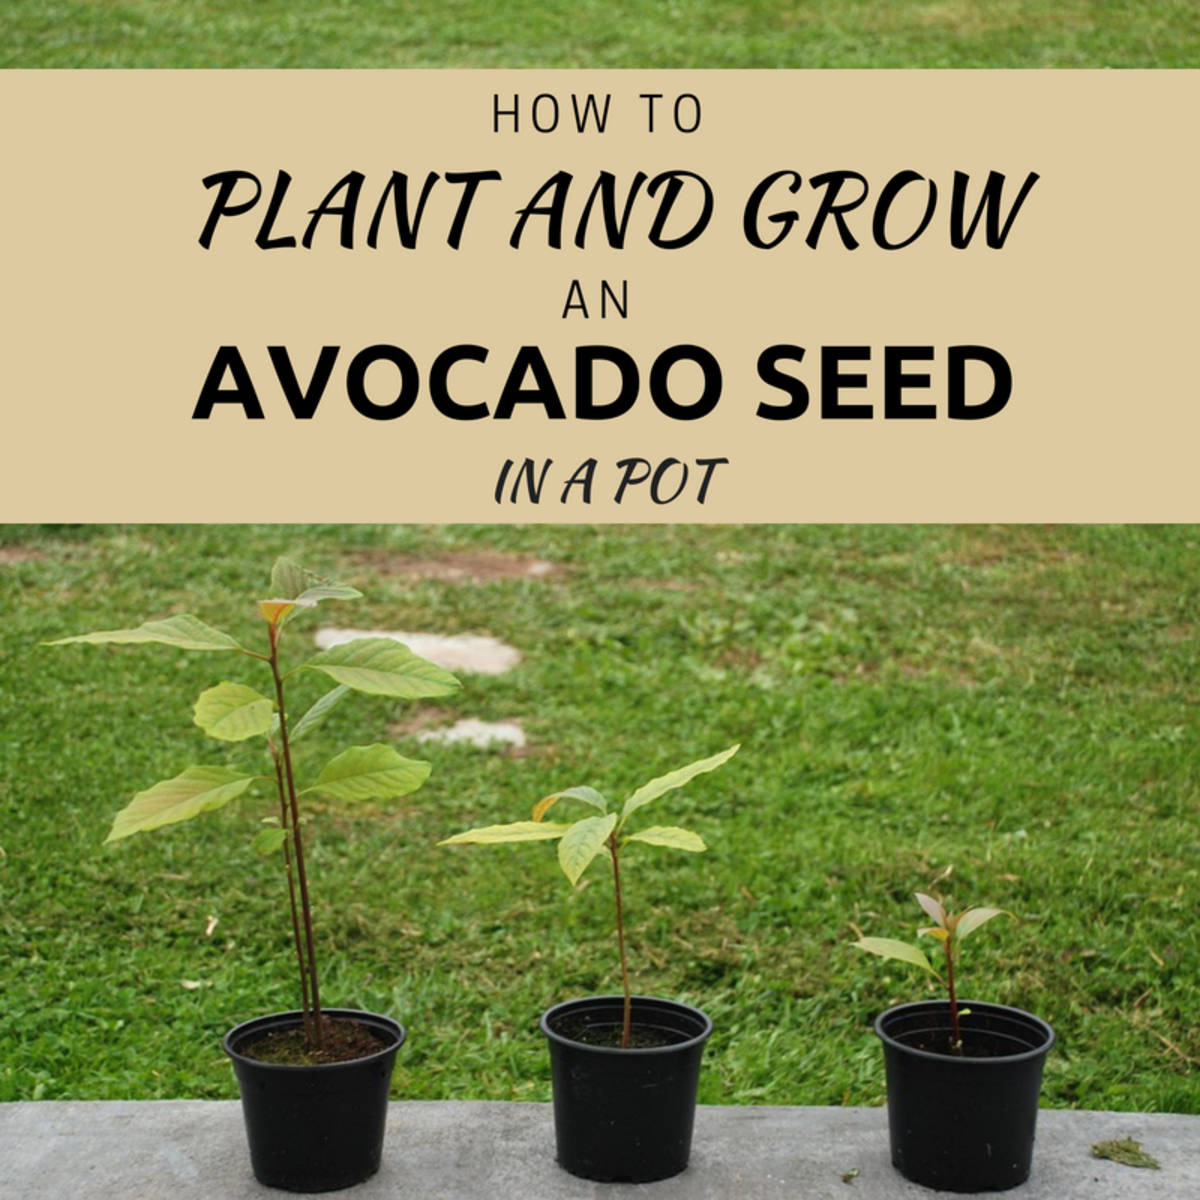 Easiest Way to Plant and Grow an Avocado Seed in Soil